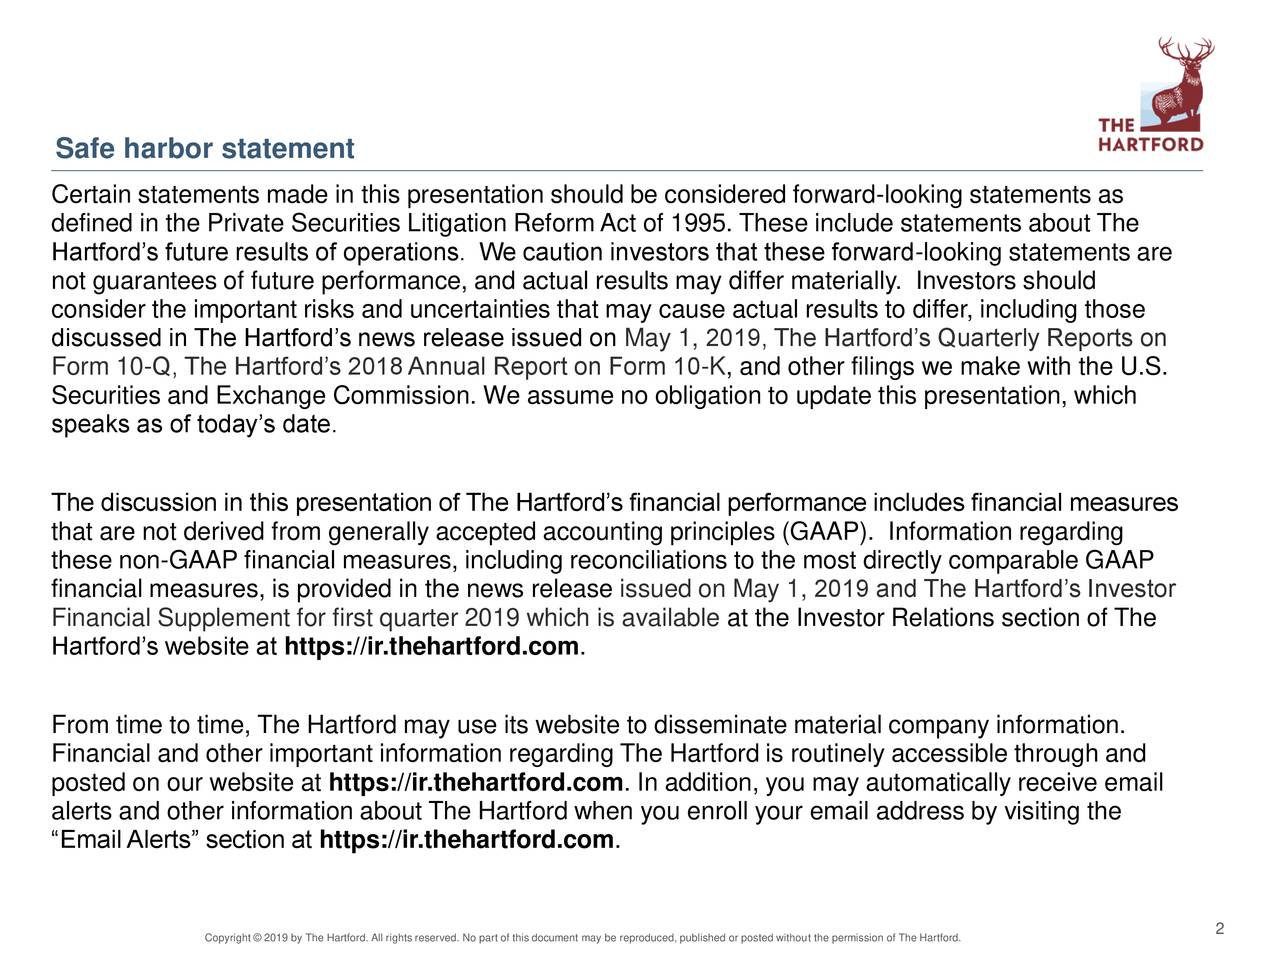 """Certain statements made in this presentation should be considered forward-looking statements as defined in the Private Securities Litigation Reform Act of 1995. These include statements about The Hartford's future results of operations. We caution investors that these forward-looking statements are not guarantees of future performance, and actual results may differ materially. Investors should consider the important risks and uncertainties that may cause actual results to differ, including those discussed in The Hartford's news release issued on May 1, 2019, The Hartford's Quarterly Reports on Form 10-Q, The Hartford's 2018 Annual Report on Form 10-K, and other filings we make with the U.S. Securities and Exchange Commission. We assume no obligation to update this presentation, which speaks as of today's date. The discussion in this presentation of The Hartford's financial performance includes financial measures that are not derived from generally accepted accounting principles (GAAP). Information regarding these non-GAAP financial measures, including reconciliations to the most directly comparable GAAP financial measures, is provided in the news release issued on May 1, 2019 and The Hartford's Investor Financial Supplement for first quarter 2019 which is available at the Investor Relations section of The Hartford's website at https://ir.thehartford.com. From time to time, The Hartford may use its website to disseminate material company information. Financial and other important information regarding The Hartford is routinely accessible through and posted on our website at https://ir.thehartford.com. In addition, you may automatically receive email alerts and other information about The Hartford when you enroll your email address by visiting the """"Email Alerts"""" section at https://ir.thehartford.com. Copyright © 2019 by The Hartford. All rights reserved. No part of this document may be reproduced, published or posted without the permission of The Hartford."""